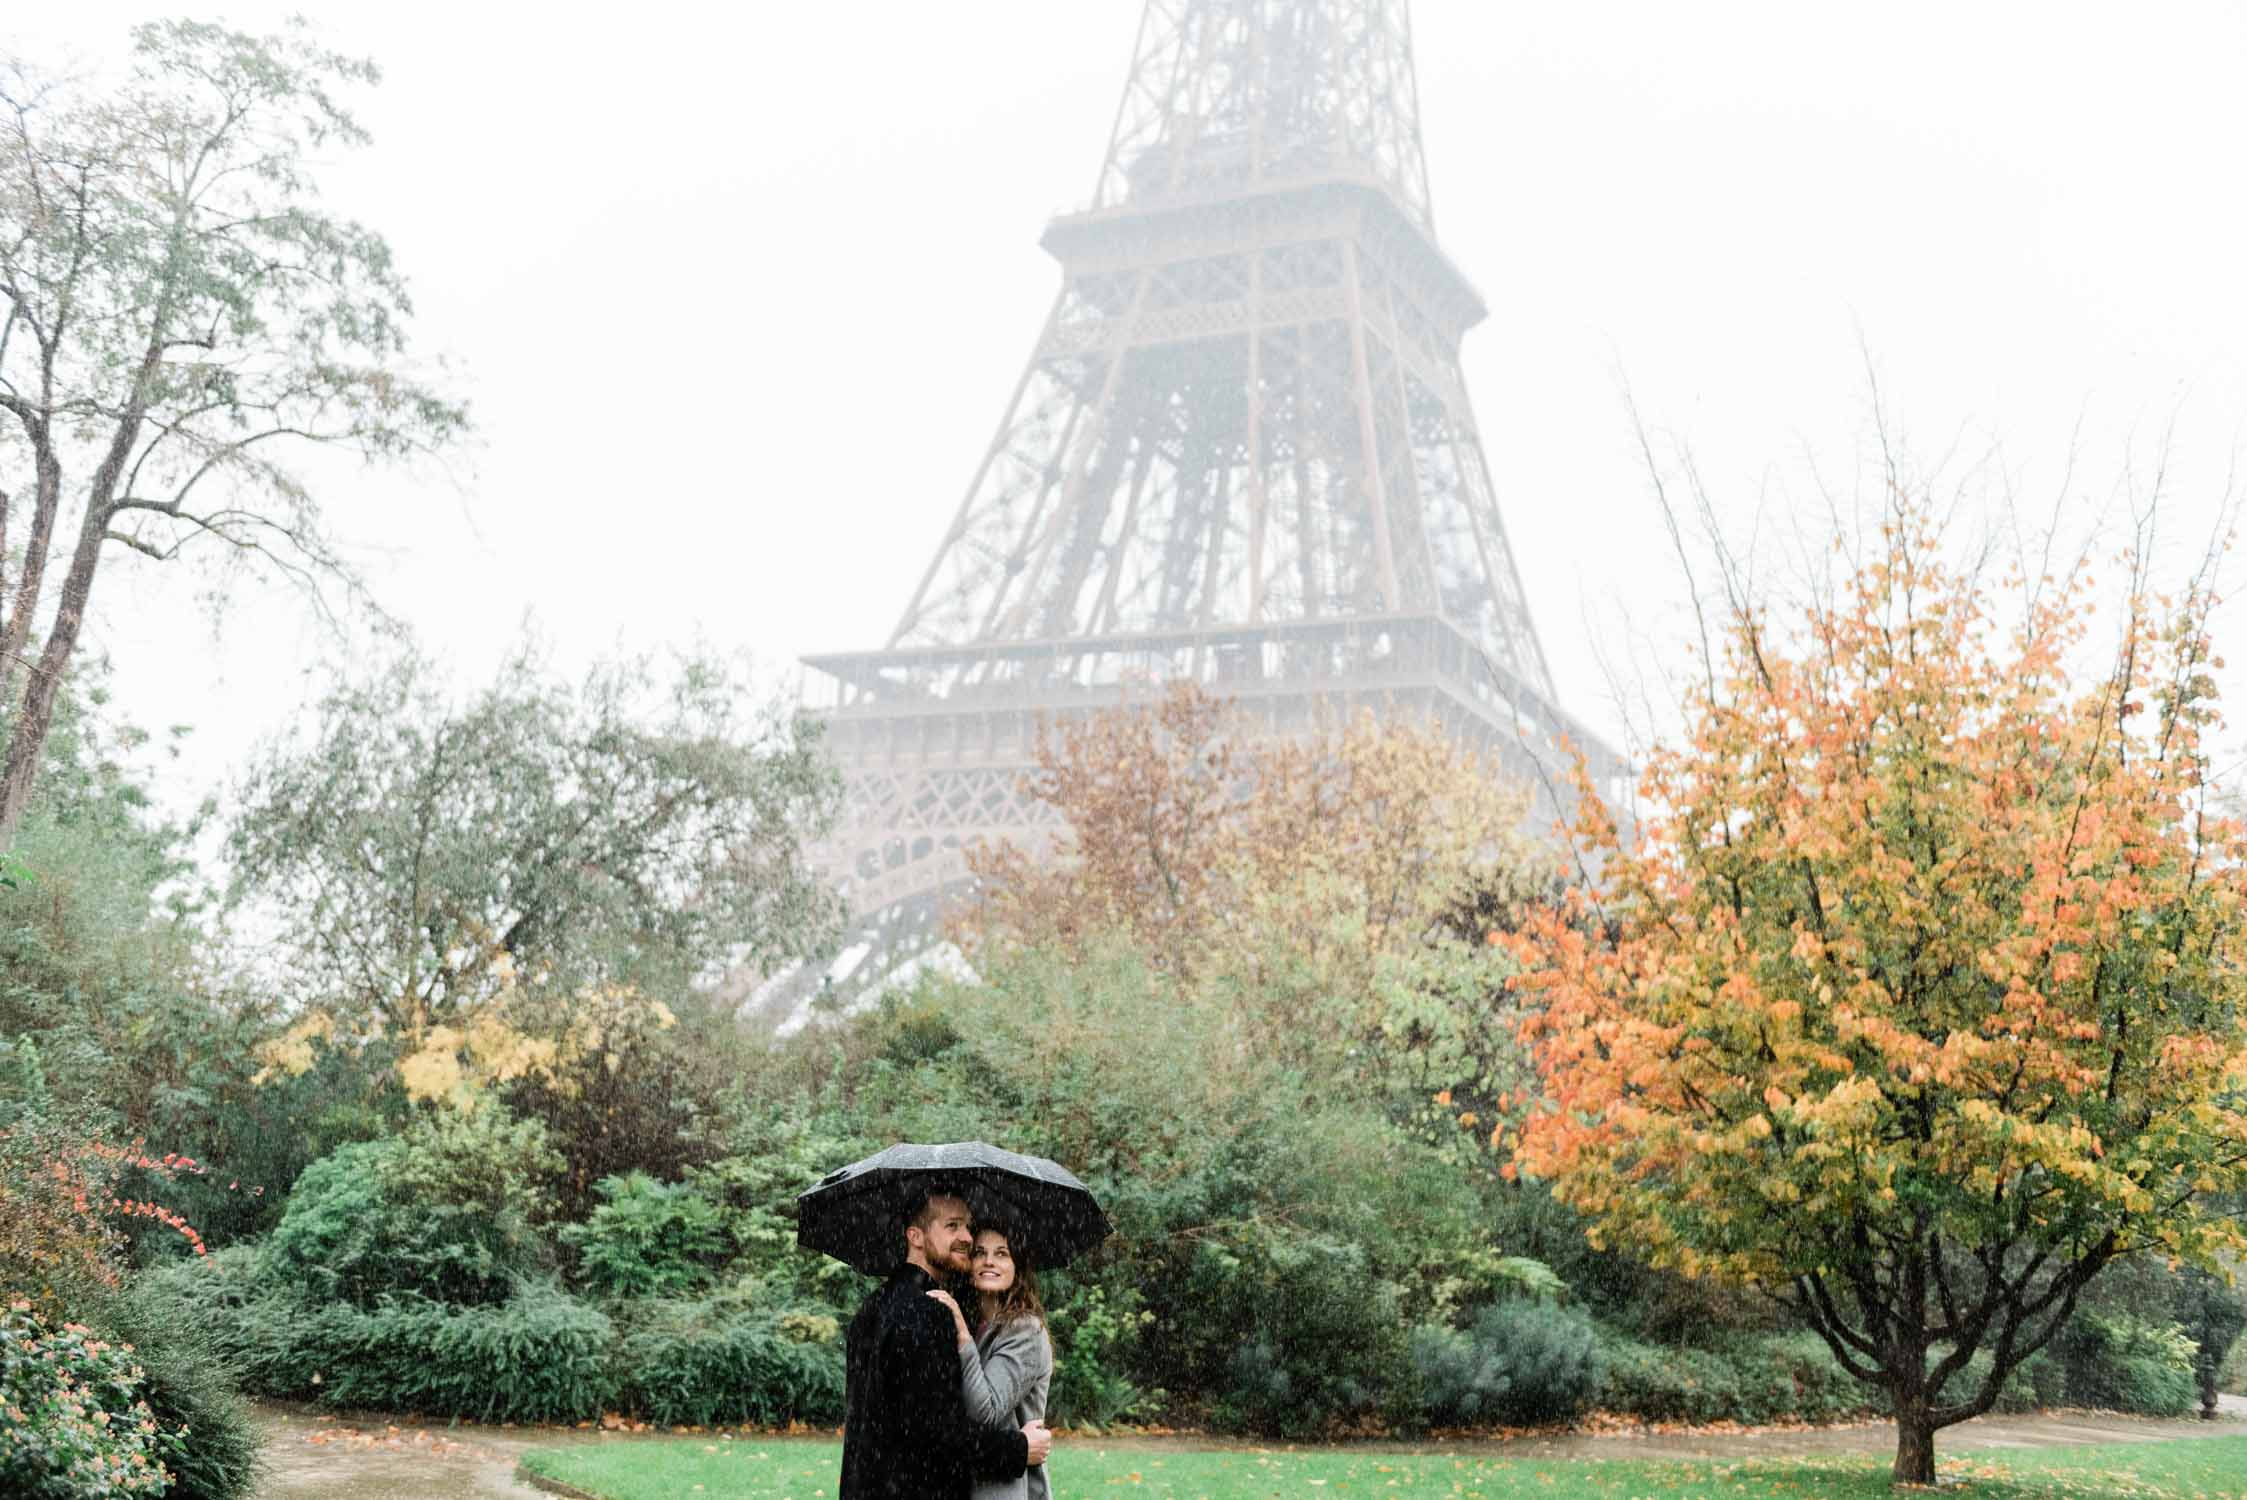 Newly engaged couple in front of the Eiffel tower and fall foliage